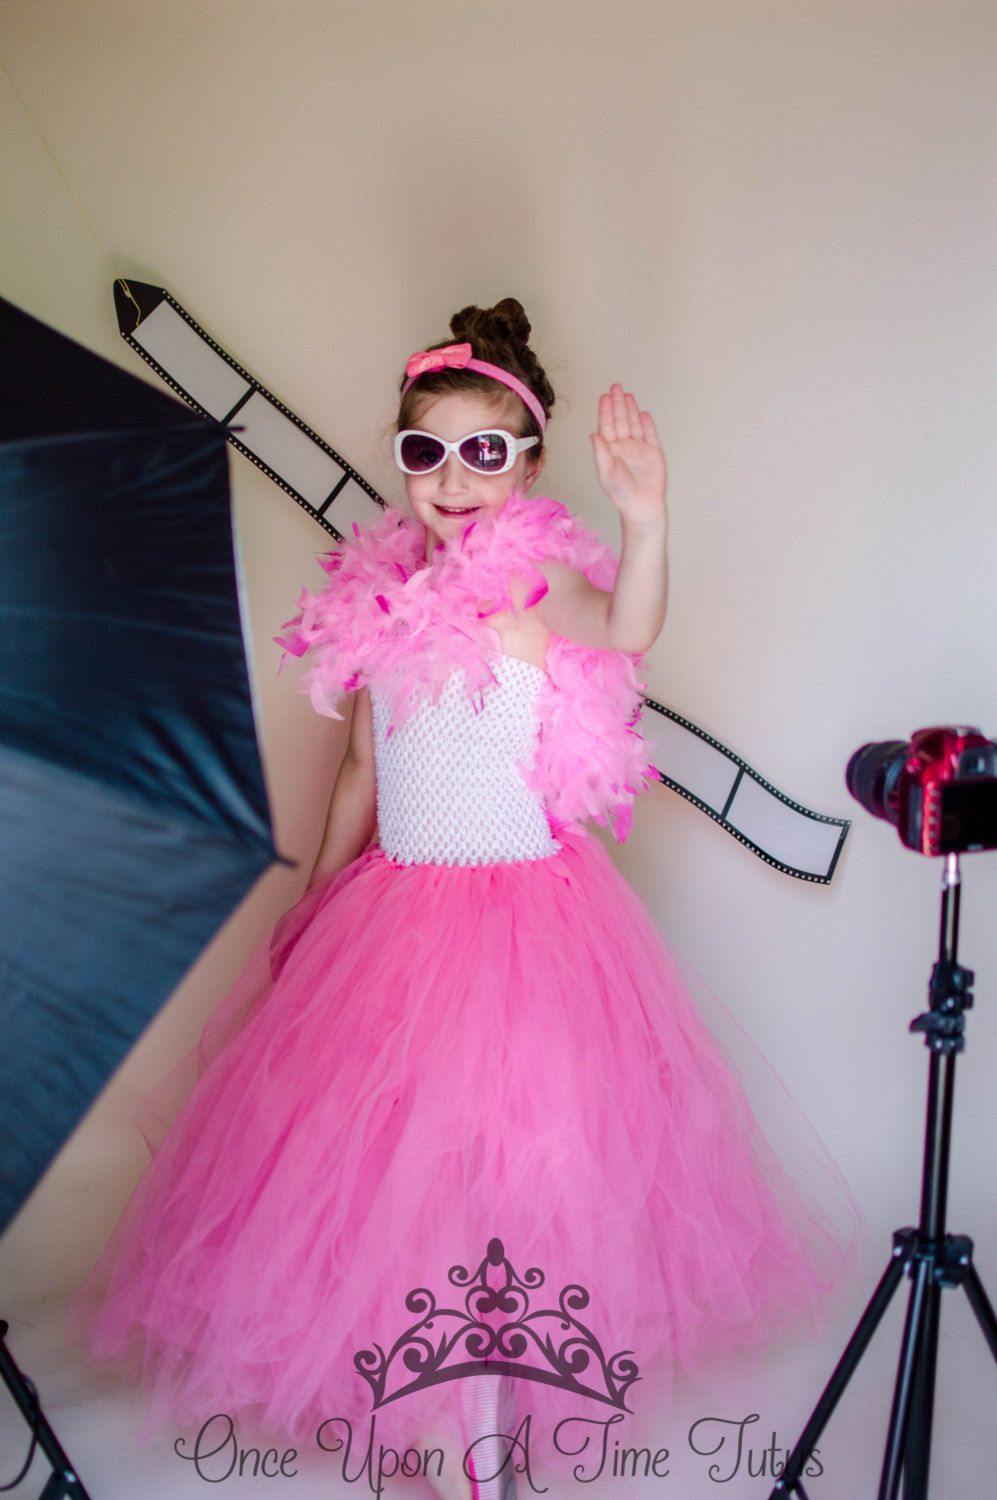 hollywood movie star tutu dress - hot pink and white pageant gown